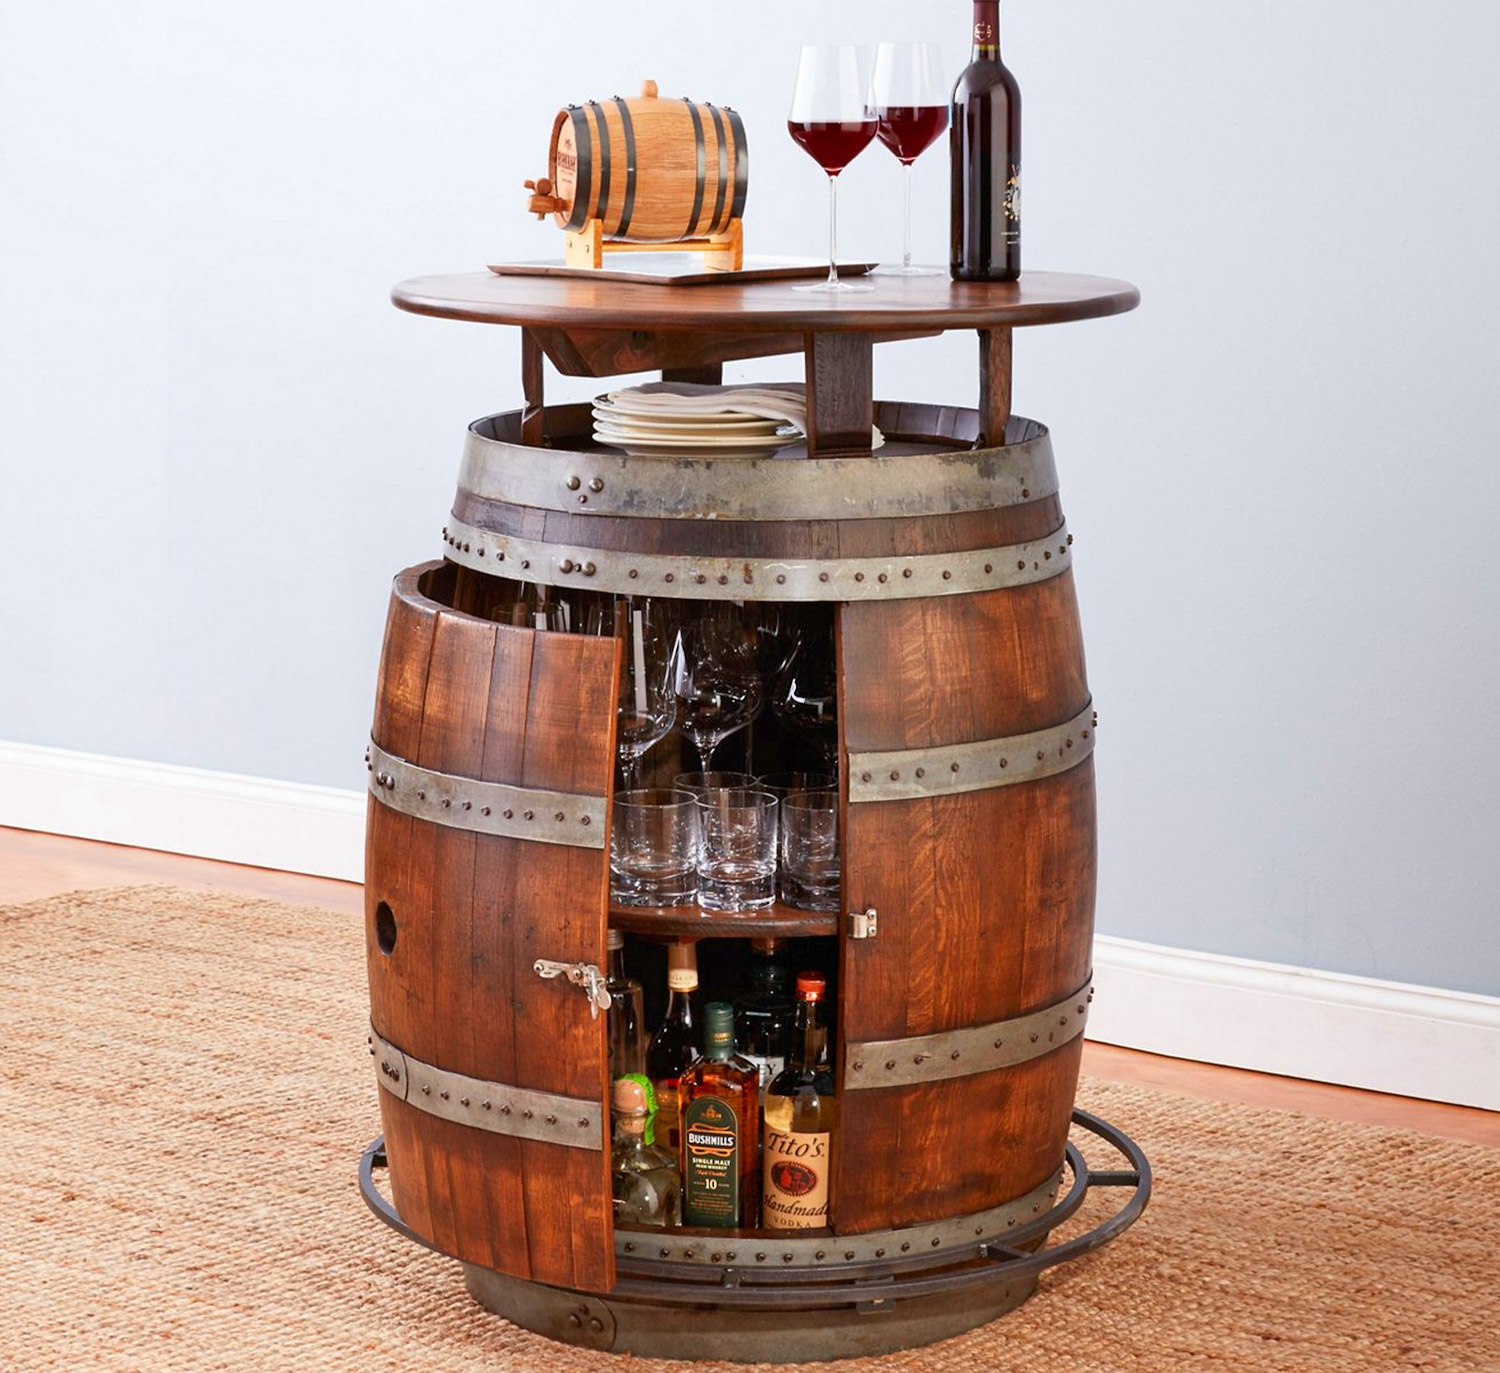 This Ultimate Wine Barrel Table Has a Hidden Storage Area Inside